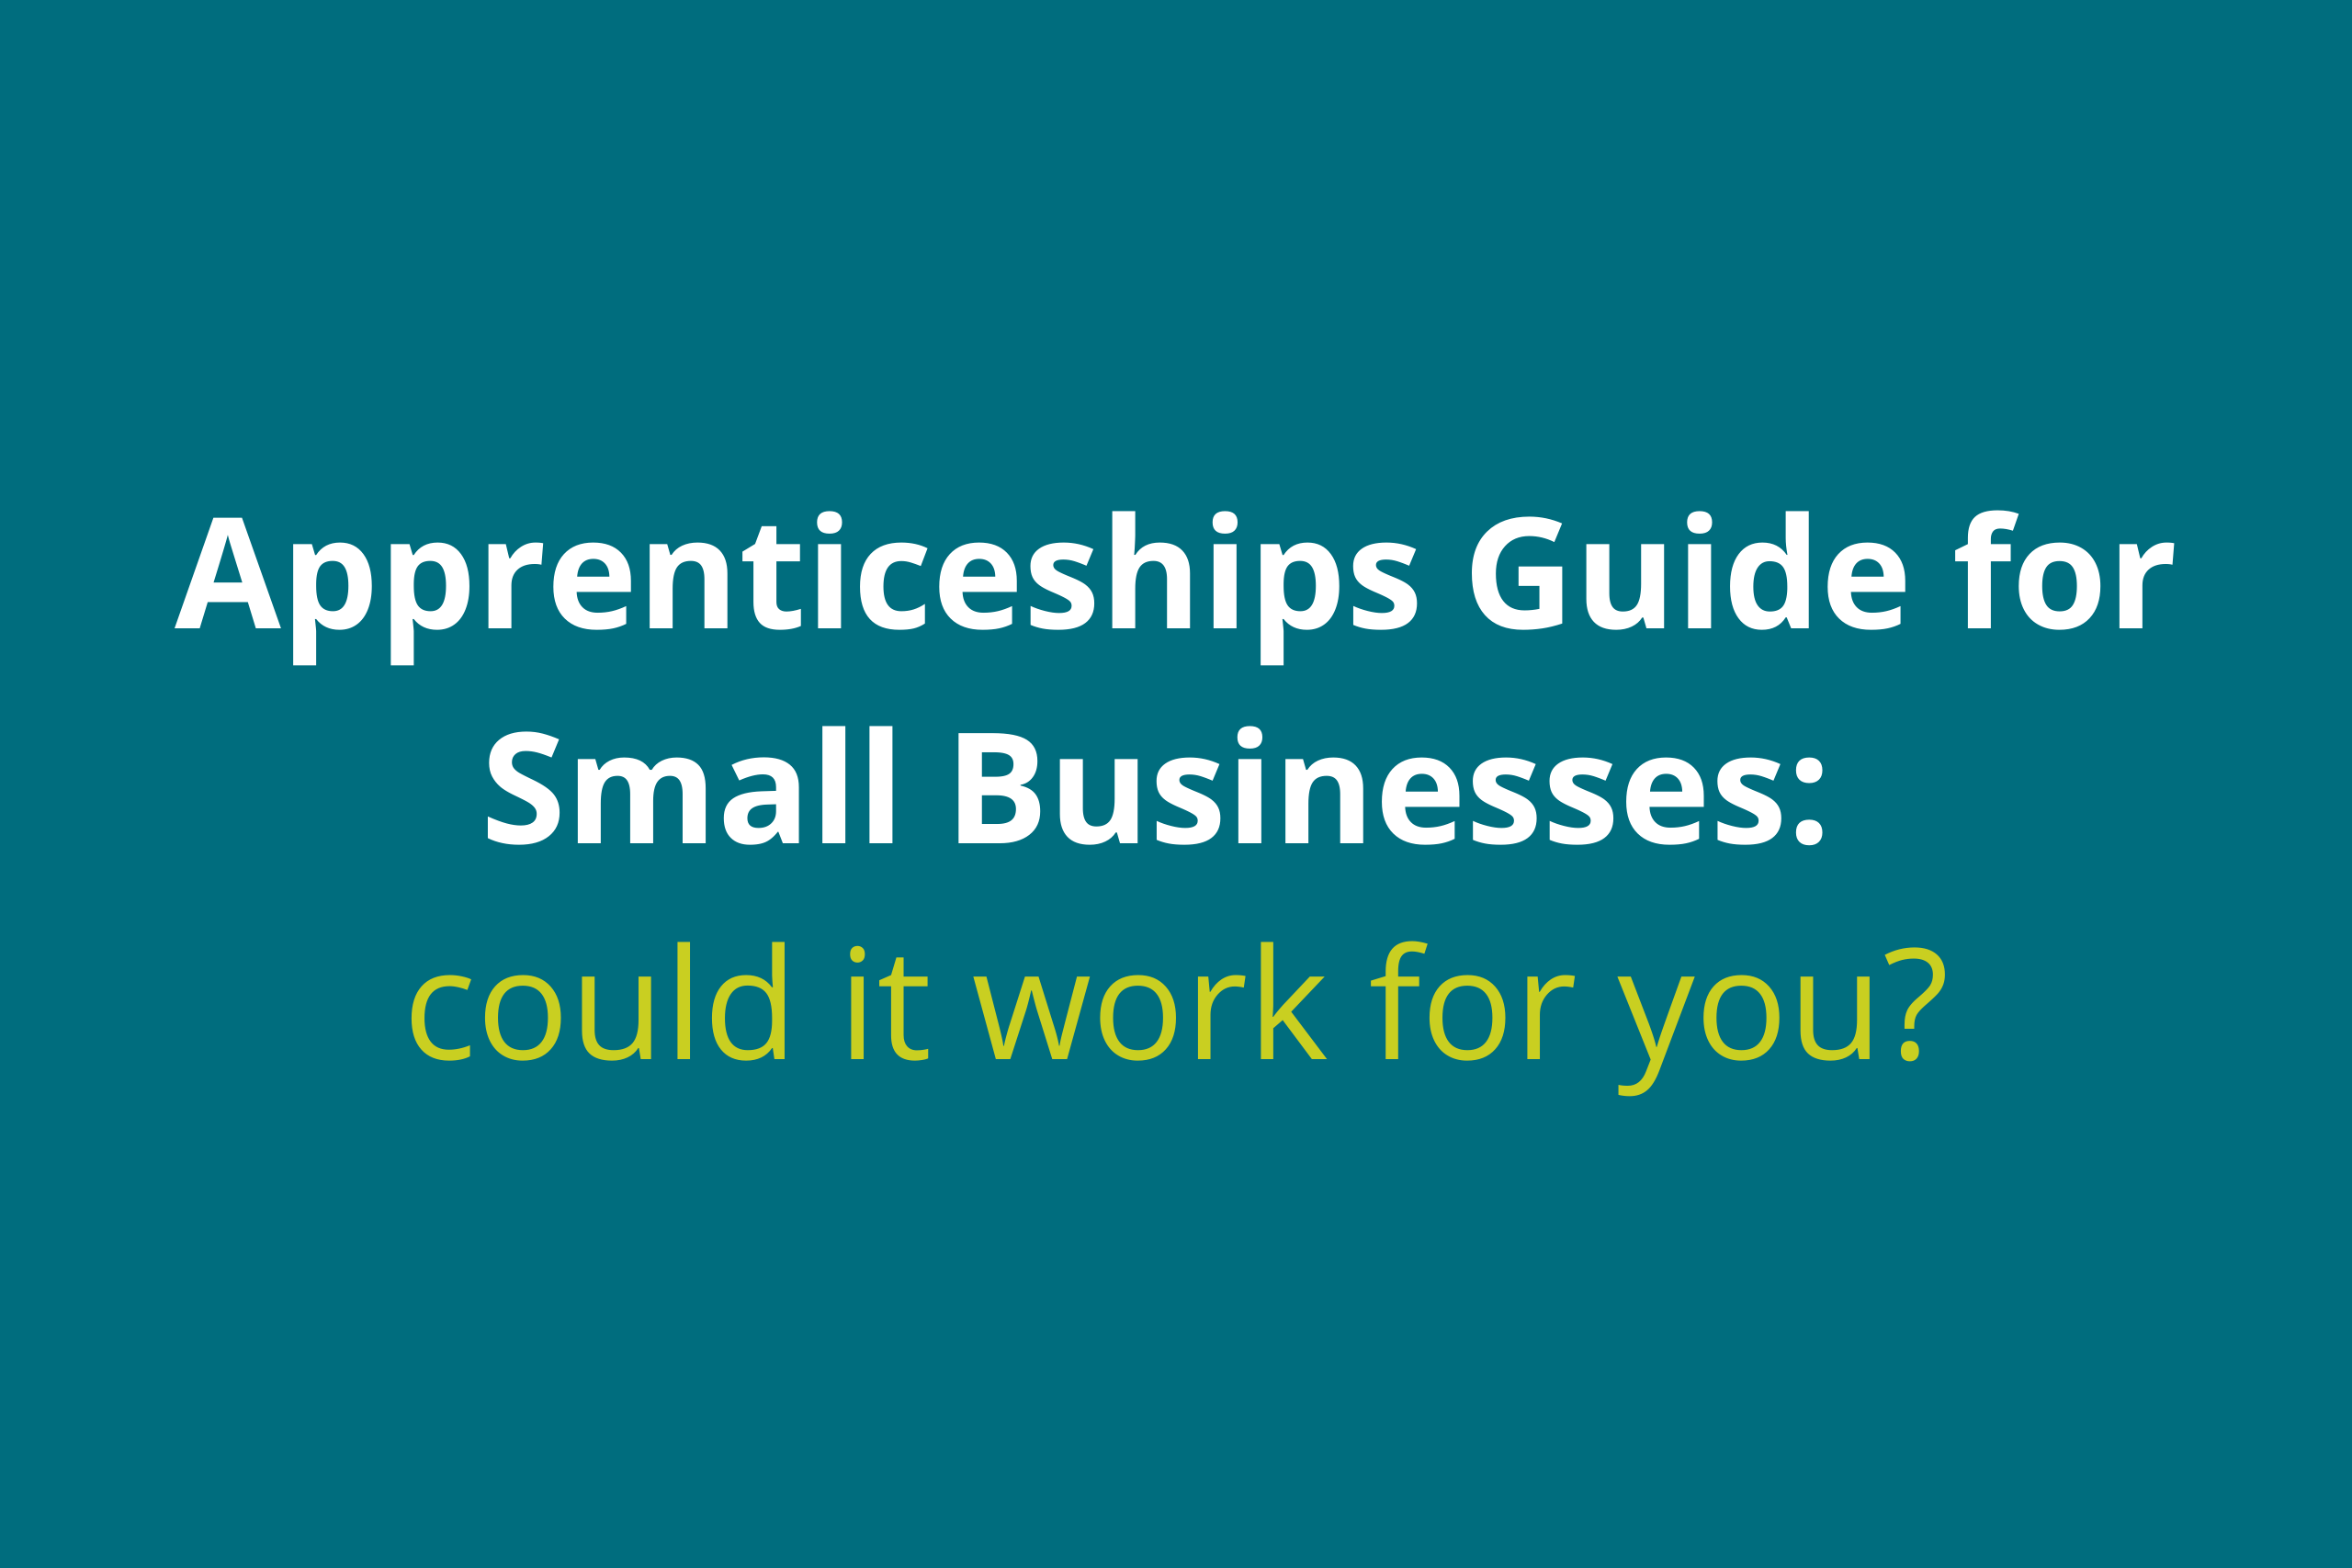 Apprenticeships guide for small businesses: could it work for you?